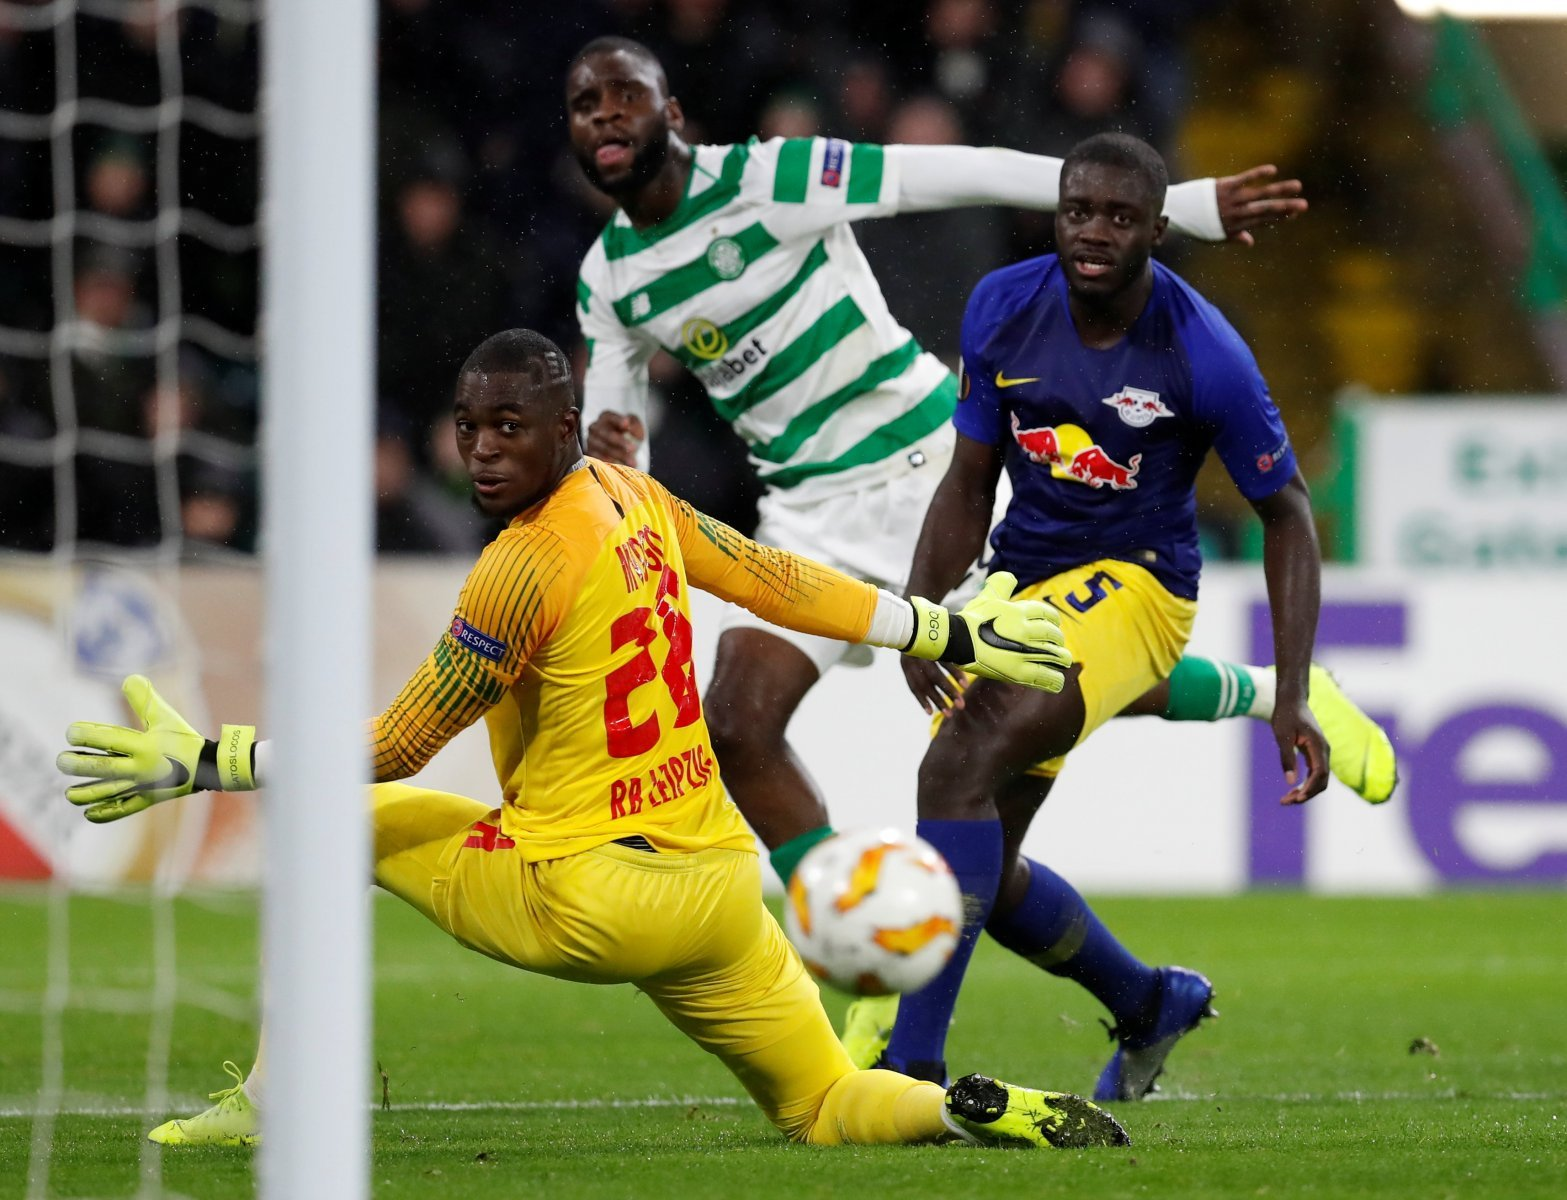 Celtic fans are full of praise after Odsonne Edouard's latest message